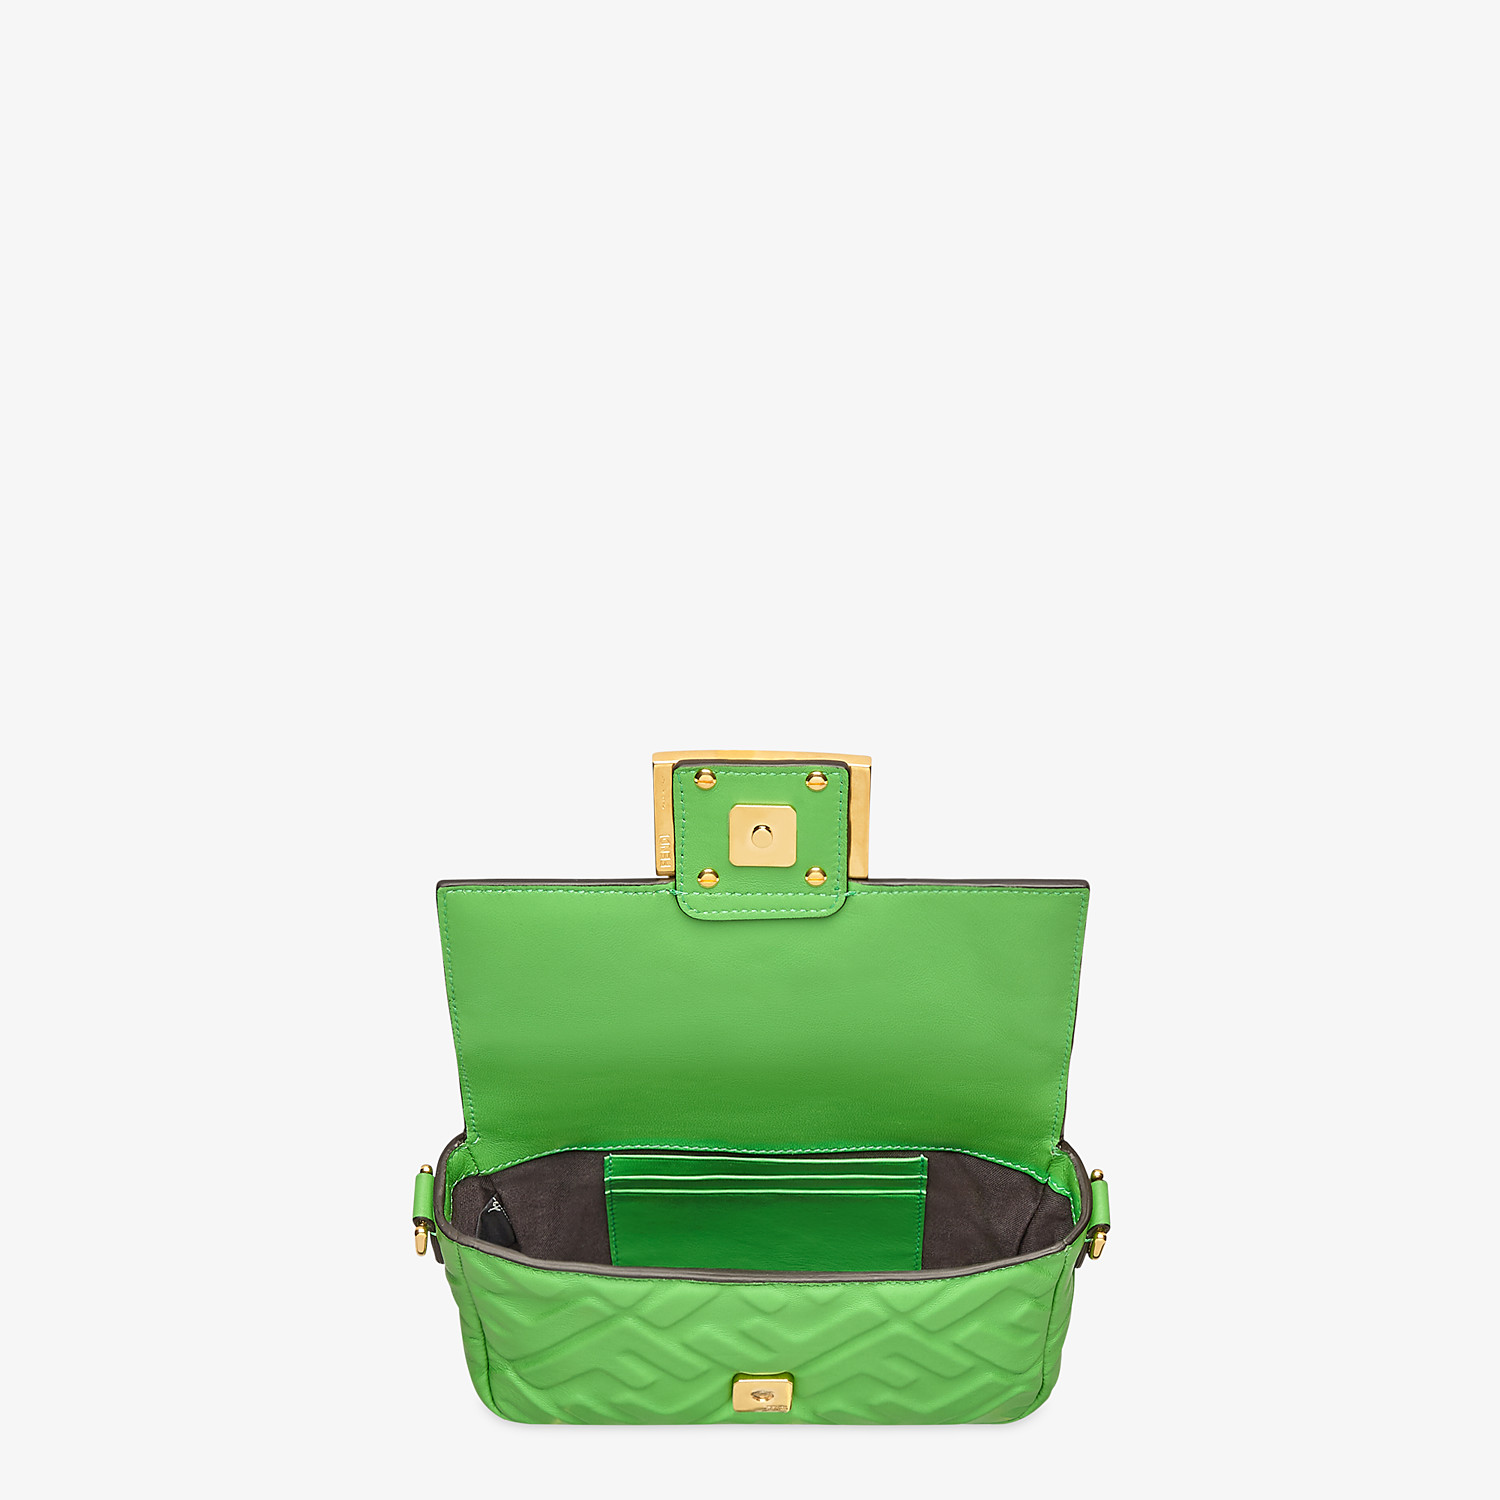 FENDI BAGUETTE - Green nappa leather bag - view 5 detail